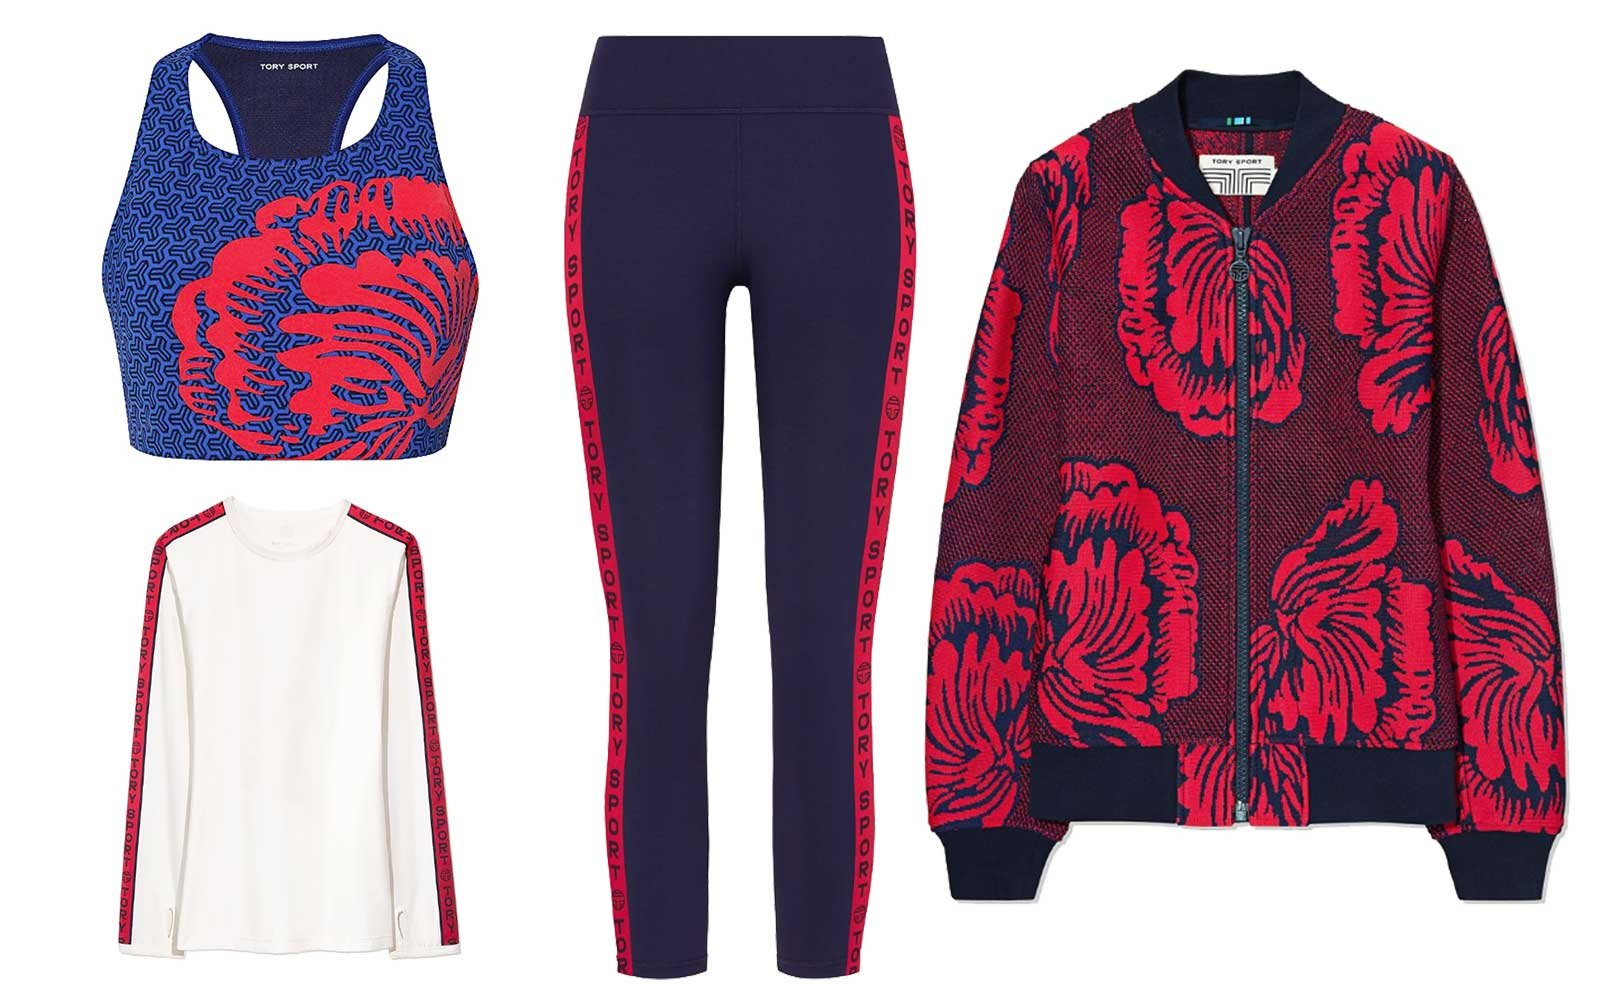 Tory Burch activewear collection